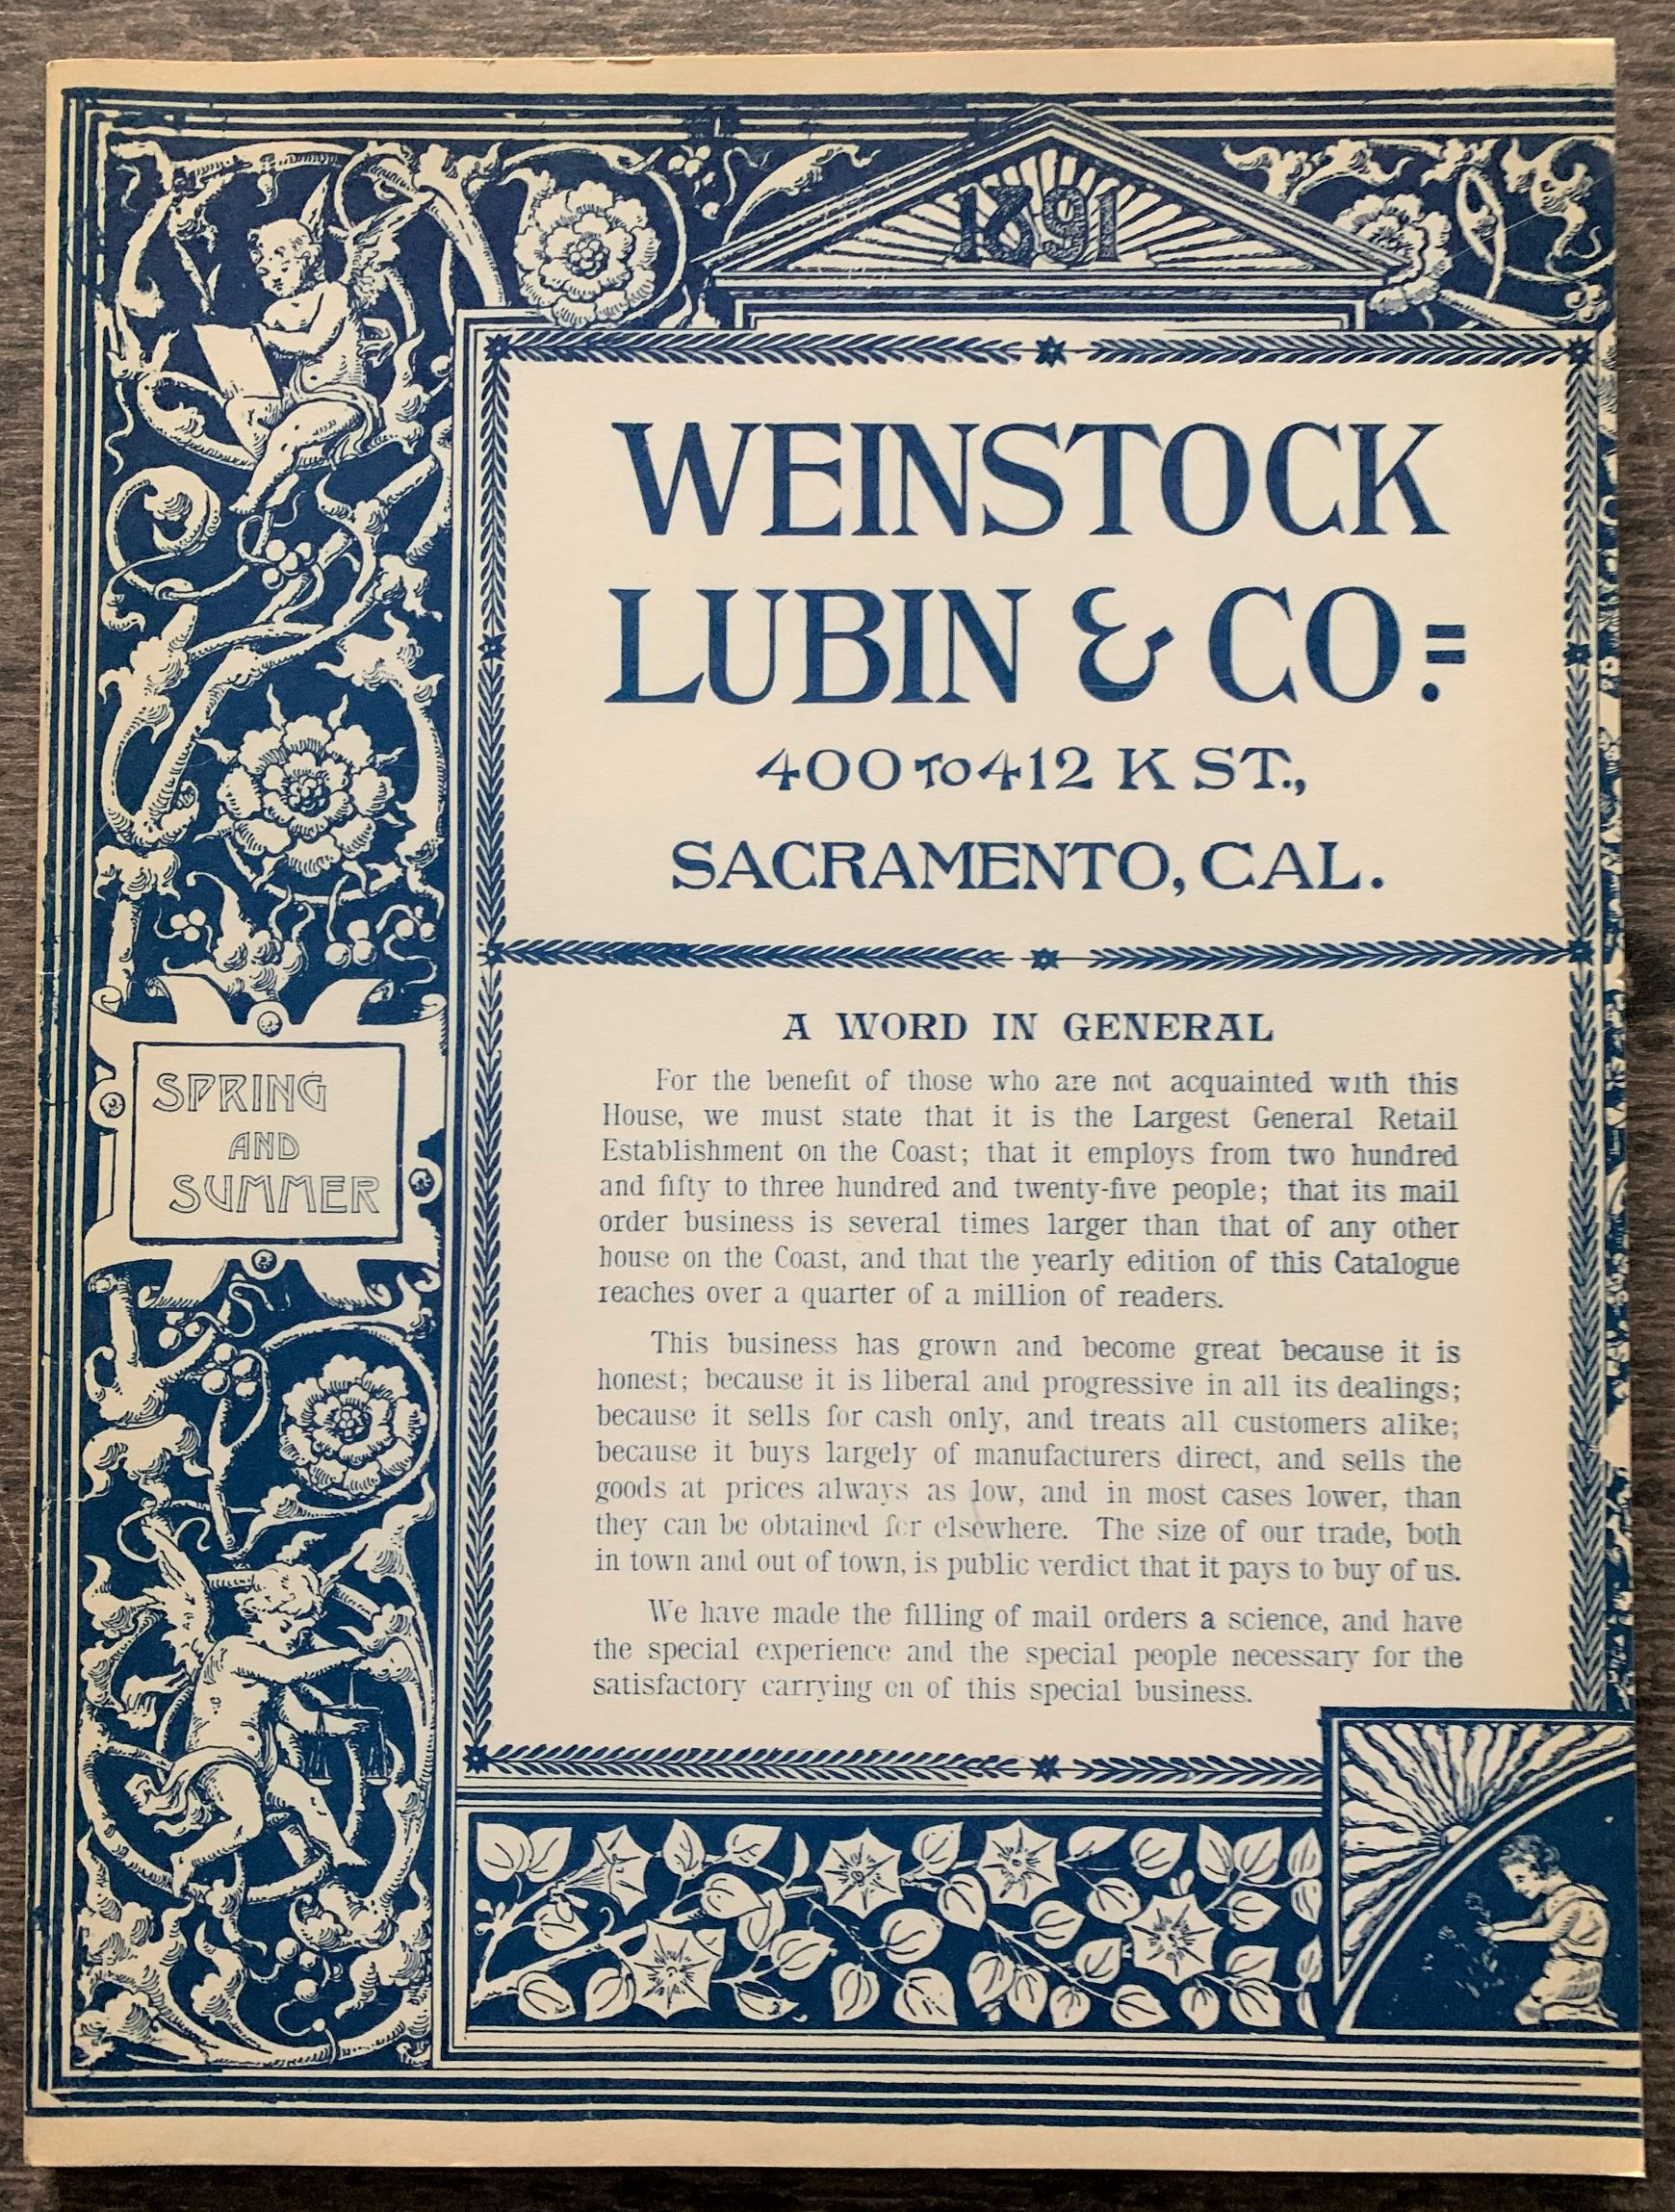 Image for 1891 Edition of, The Weinstock Lubin Co. Catalog.  Introduction by James E. Henley, Kathryn Gaeddert Teichroew.